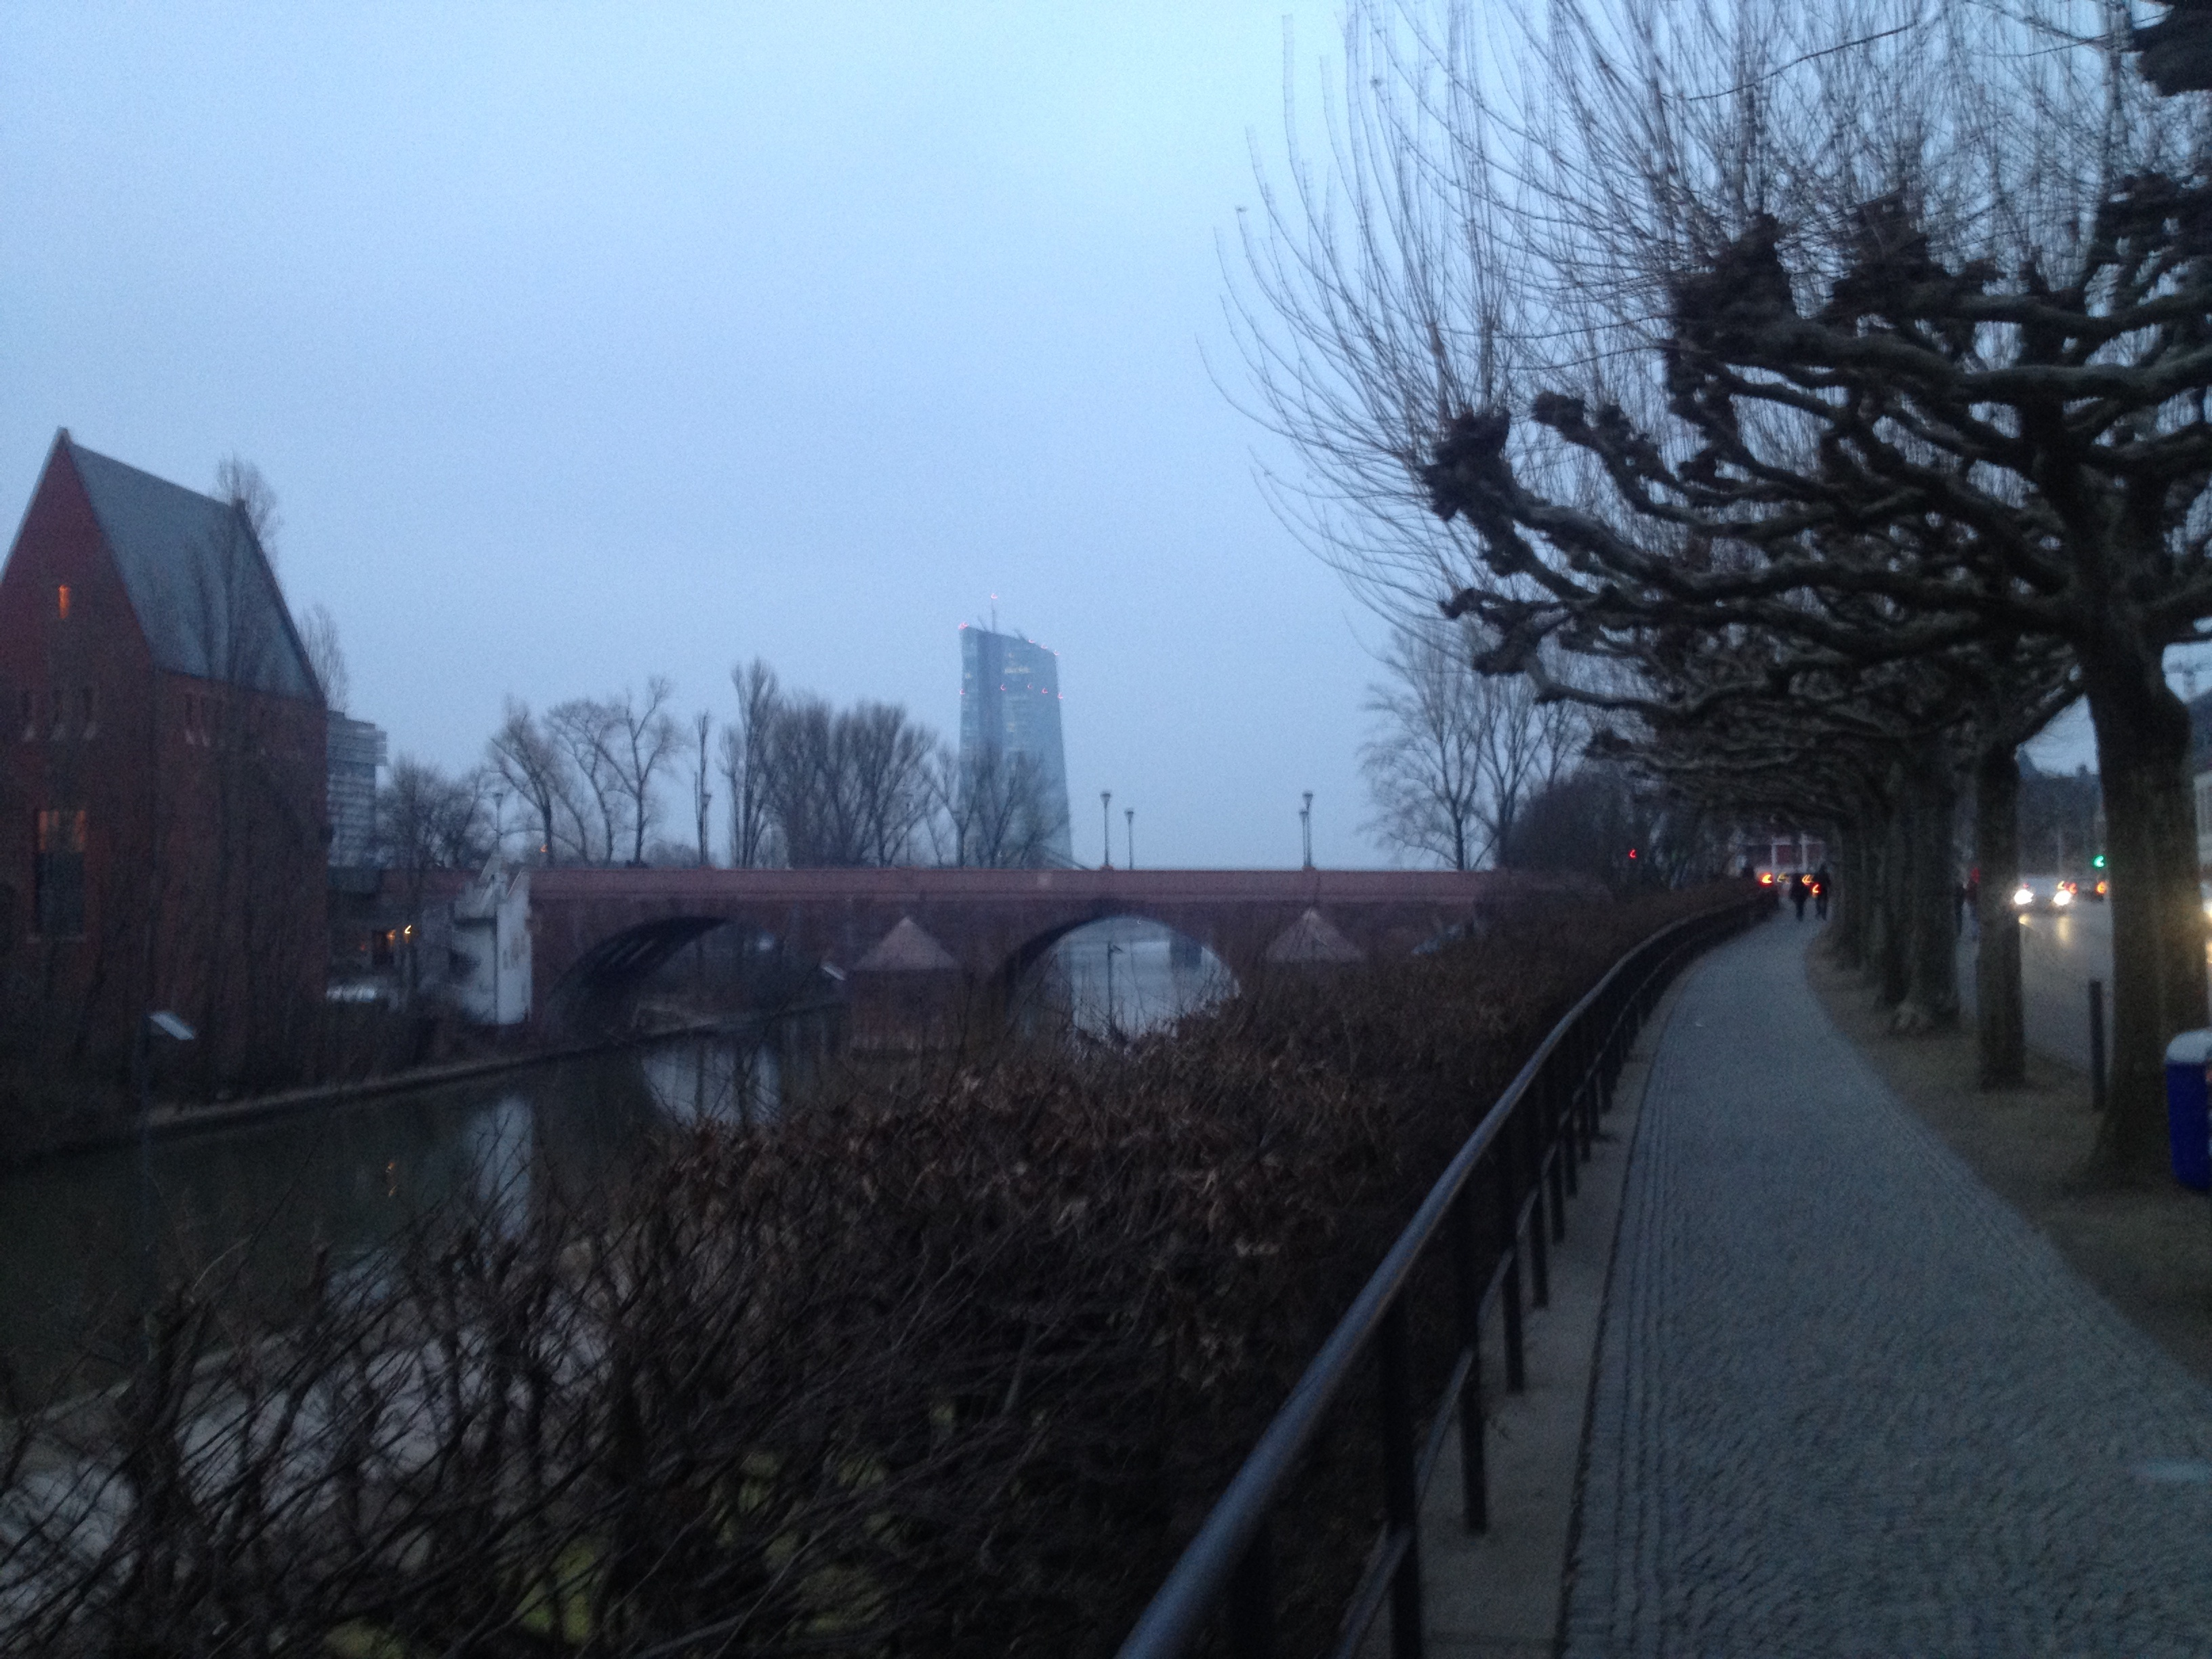 Image of Germany in the winter